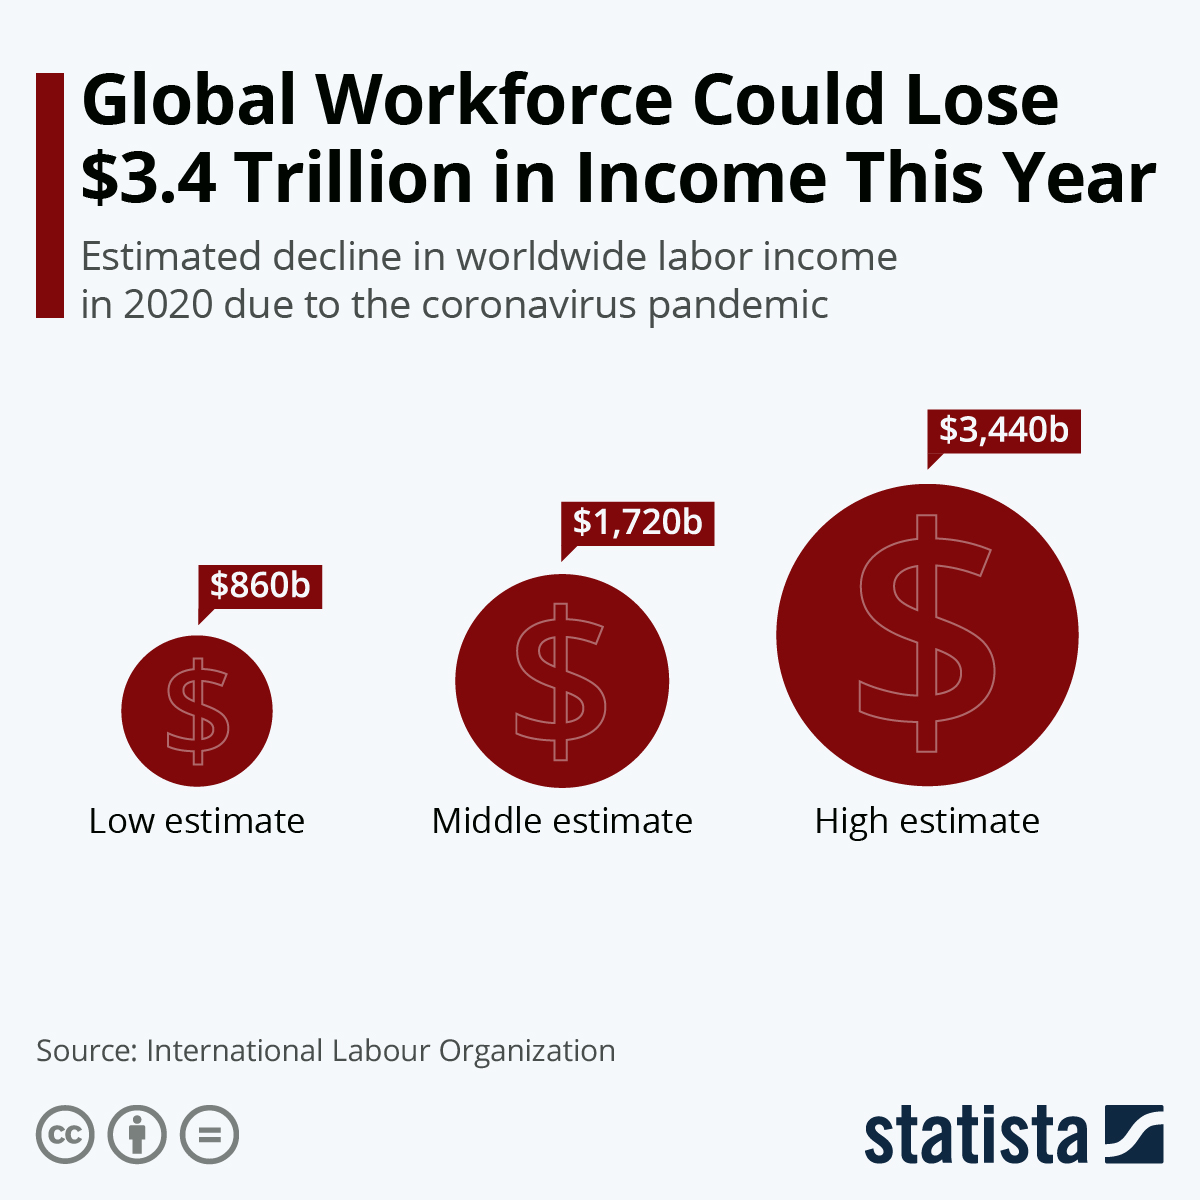 'Global Workforce Could Lose $3.4 Trillion in Income This Year'. Estimated decline in worldwide labor income in 2020 due to the coronavirus pandemic. Pictorial chart shows low, middle, and high estimates.